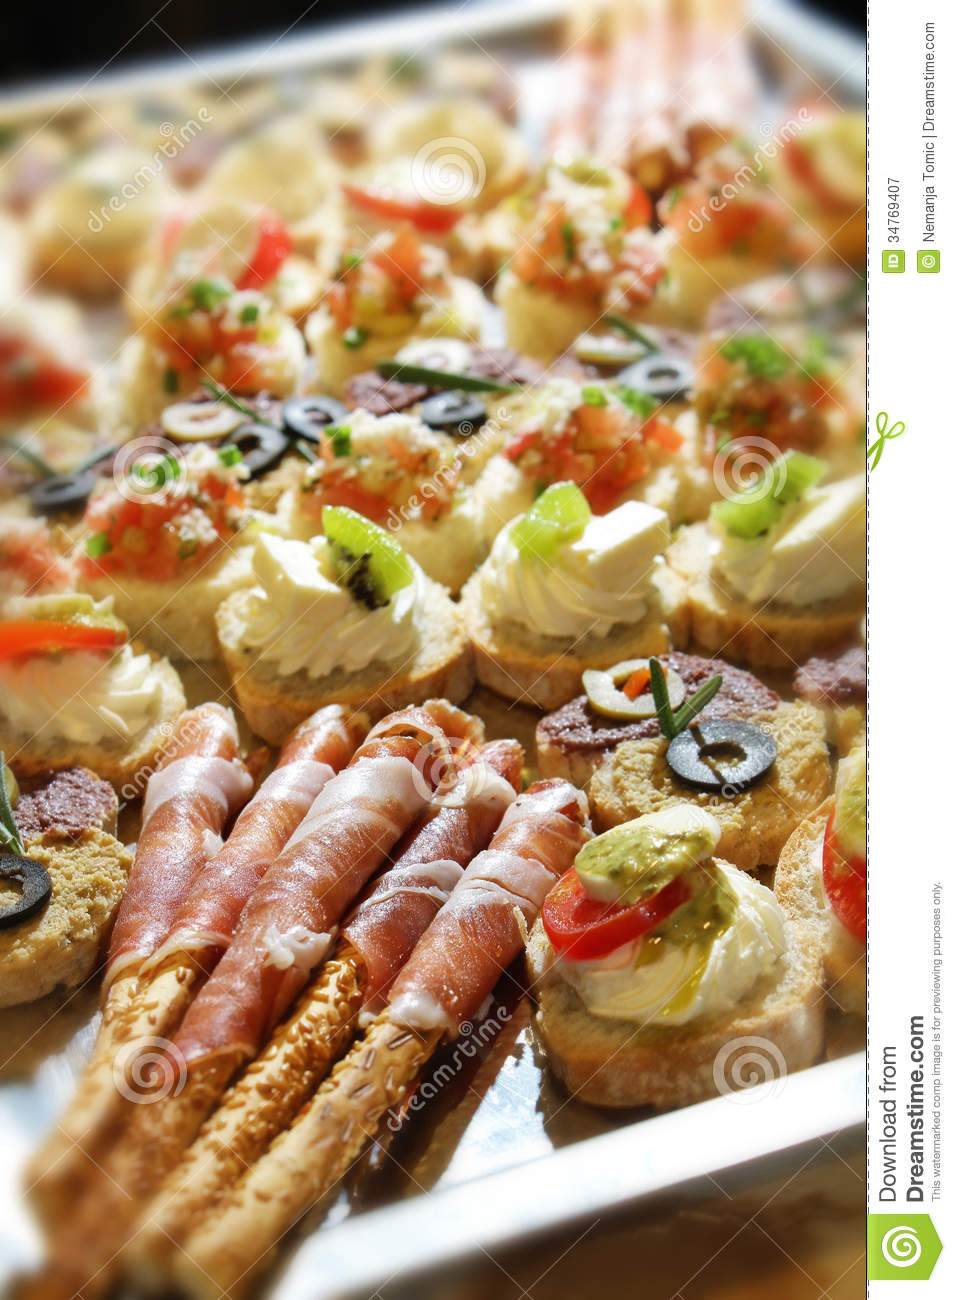 Catering business plans